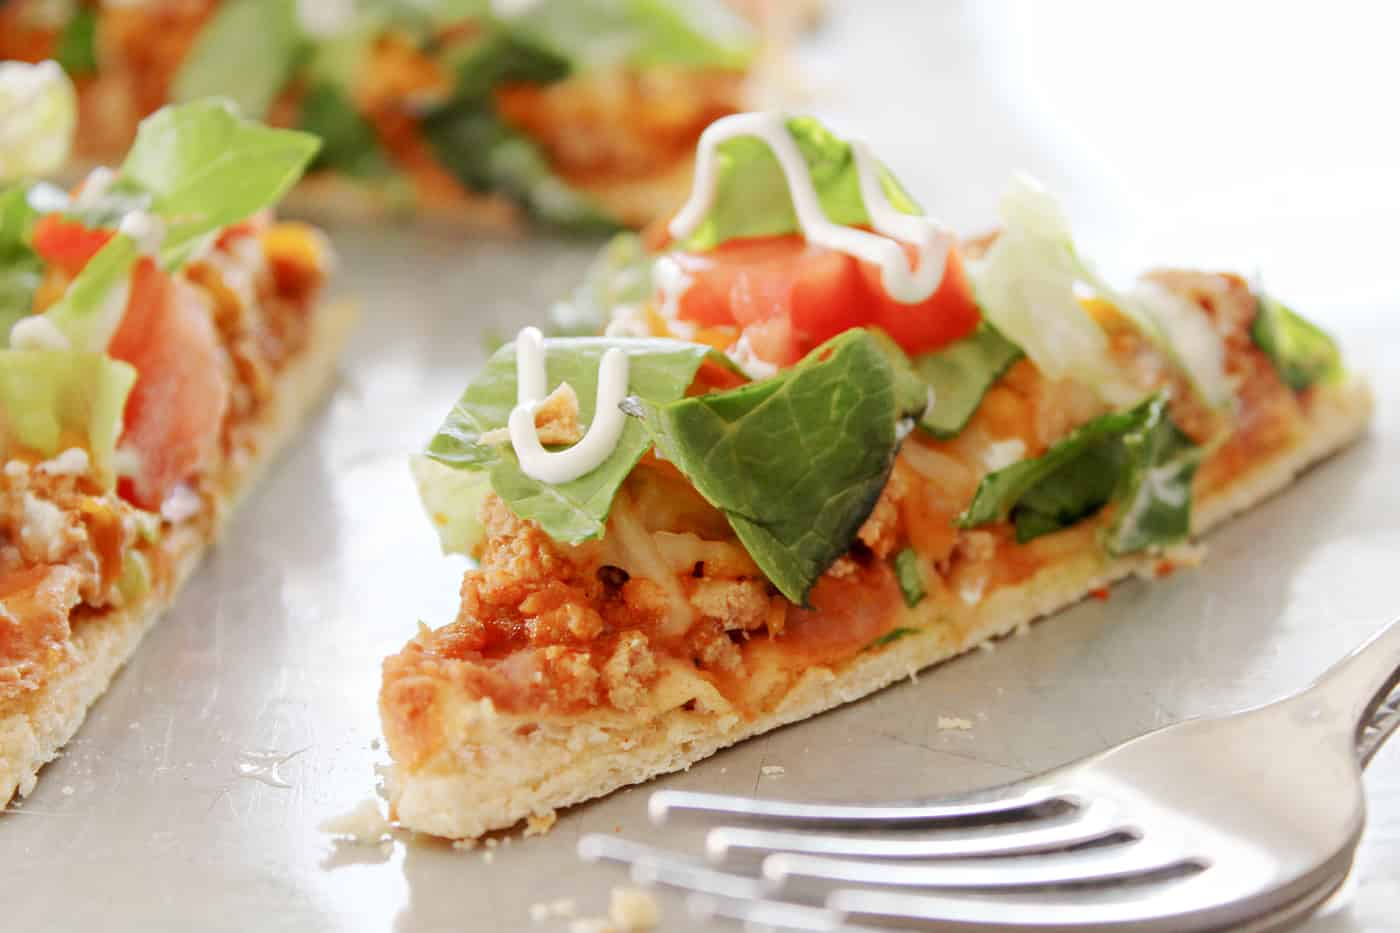 flatbread pizza slice on a plate with a fork